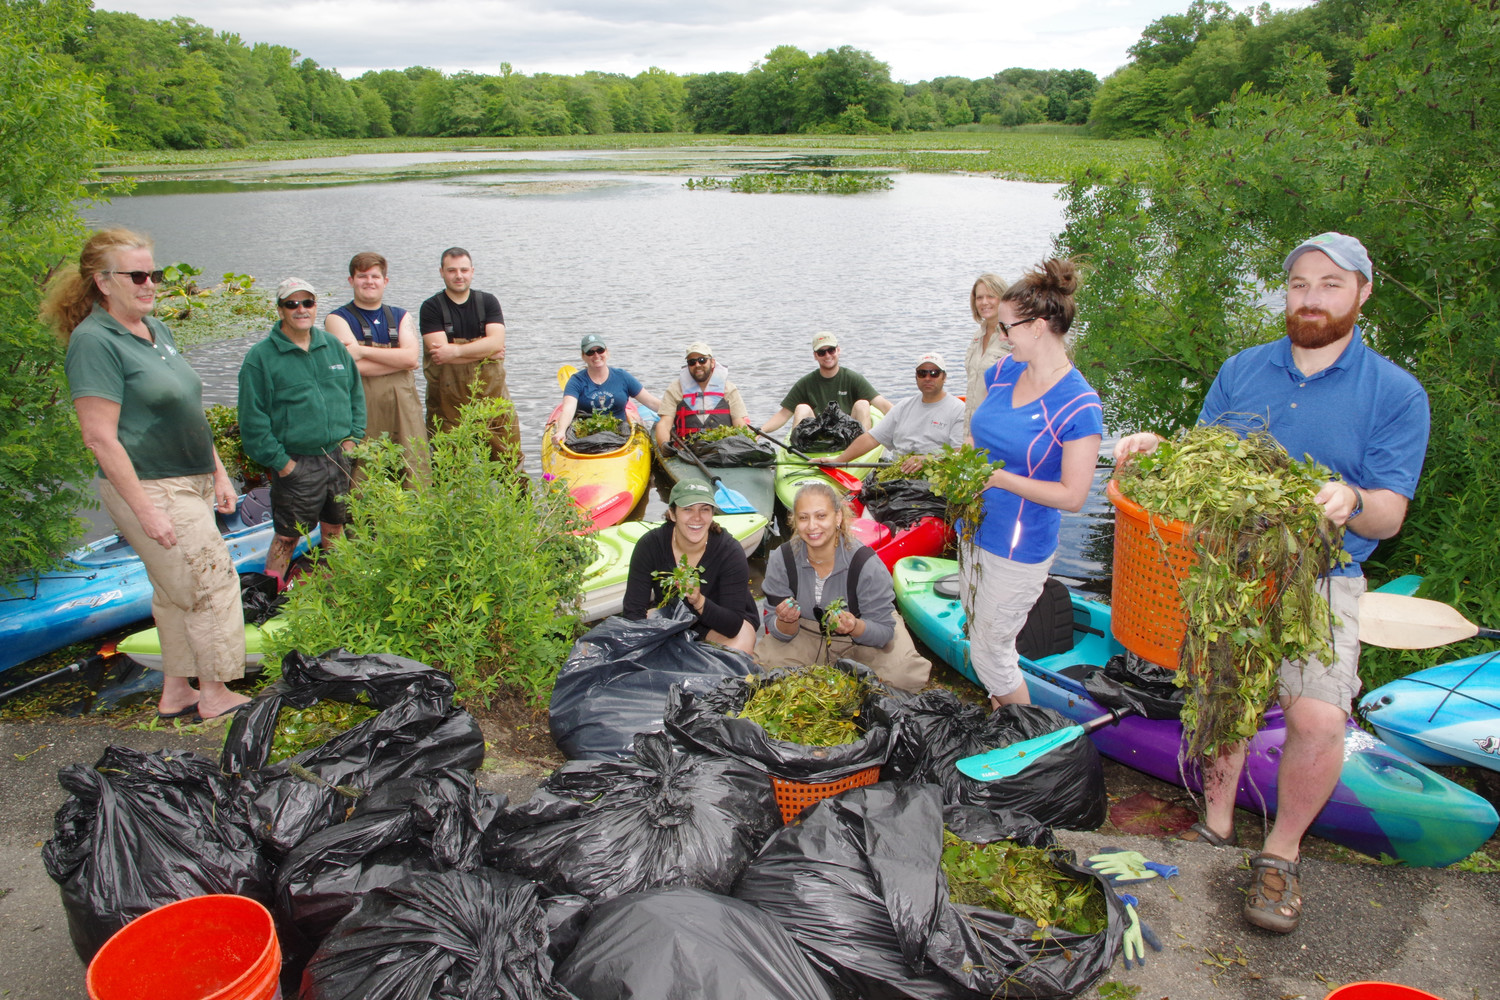 NYS Department of Environmental Conservation staff and volunteers hand-removed hundreds of pounds of the invasive plant species — water chestnut — from Mill Pond in Wantagh because the plant can harm the fish in the pond.